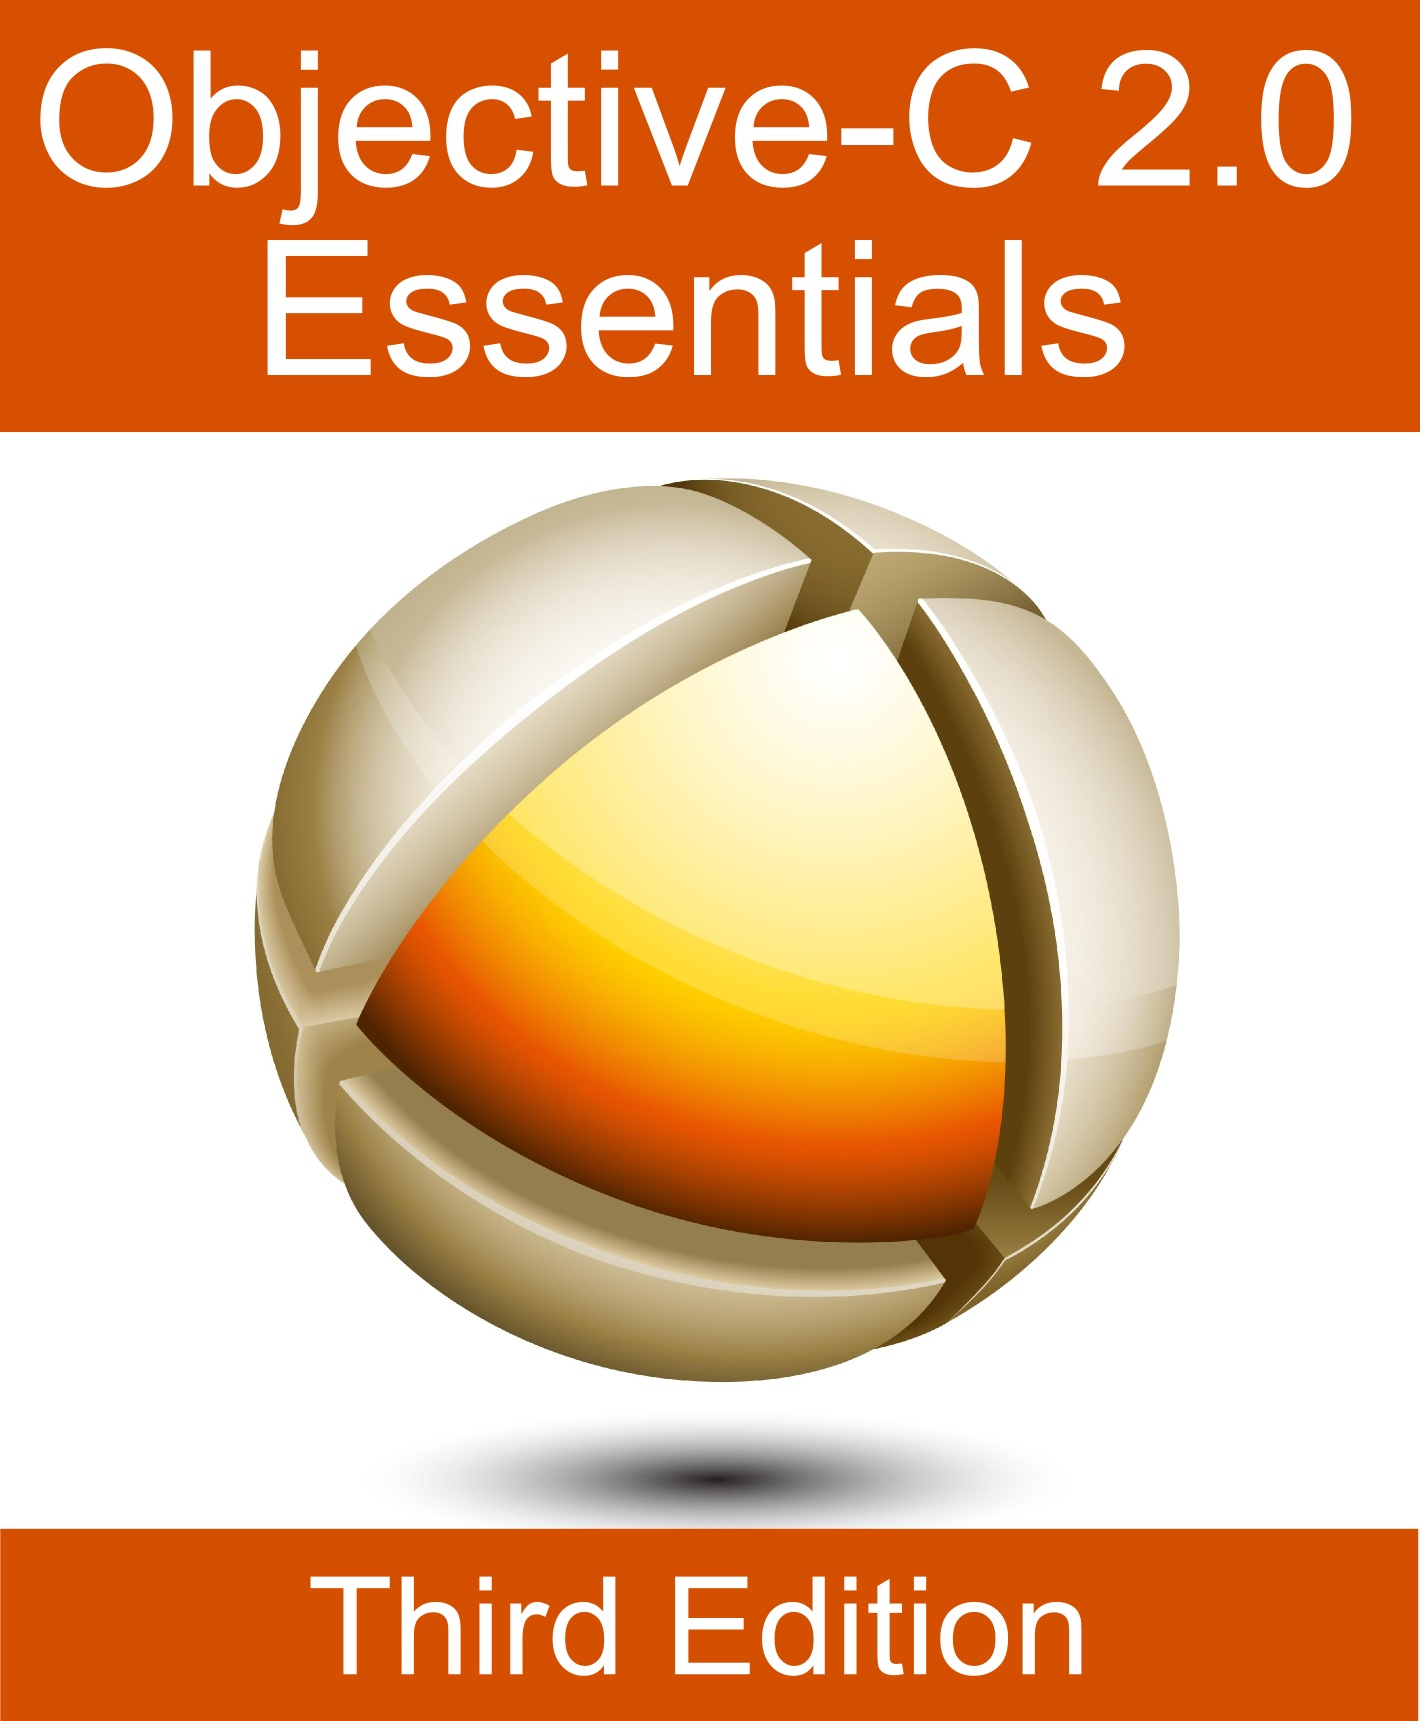 Objective-C 2.0 Essentials - Third Edition